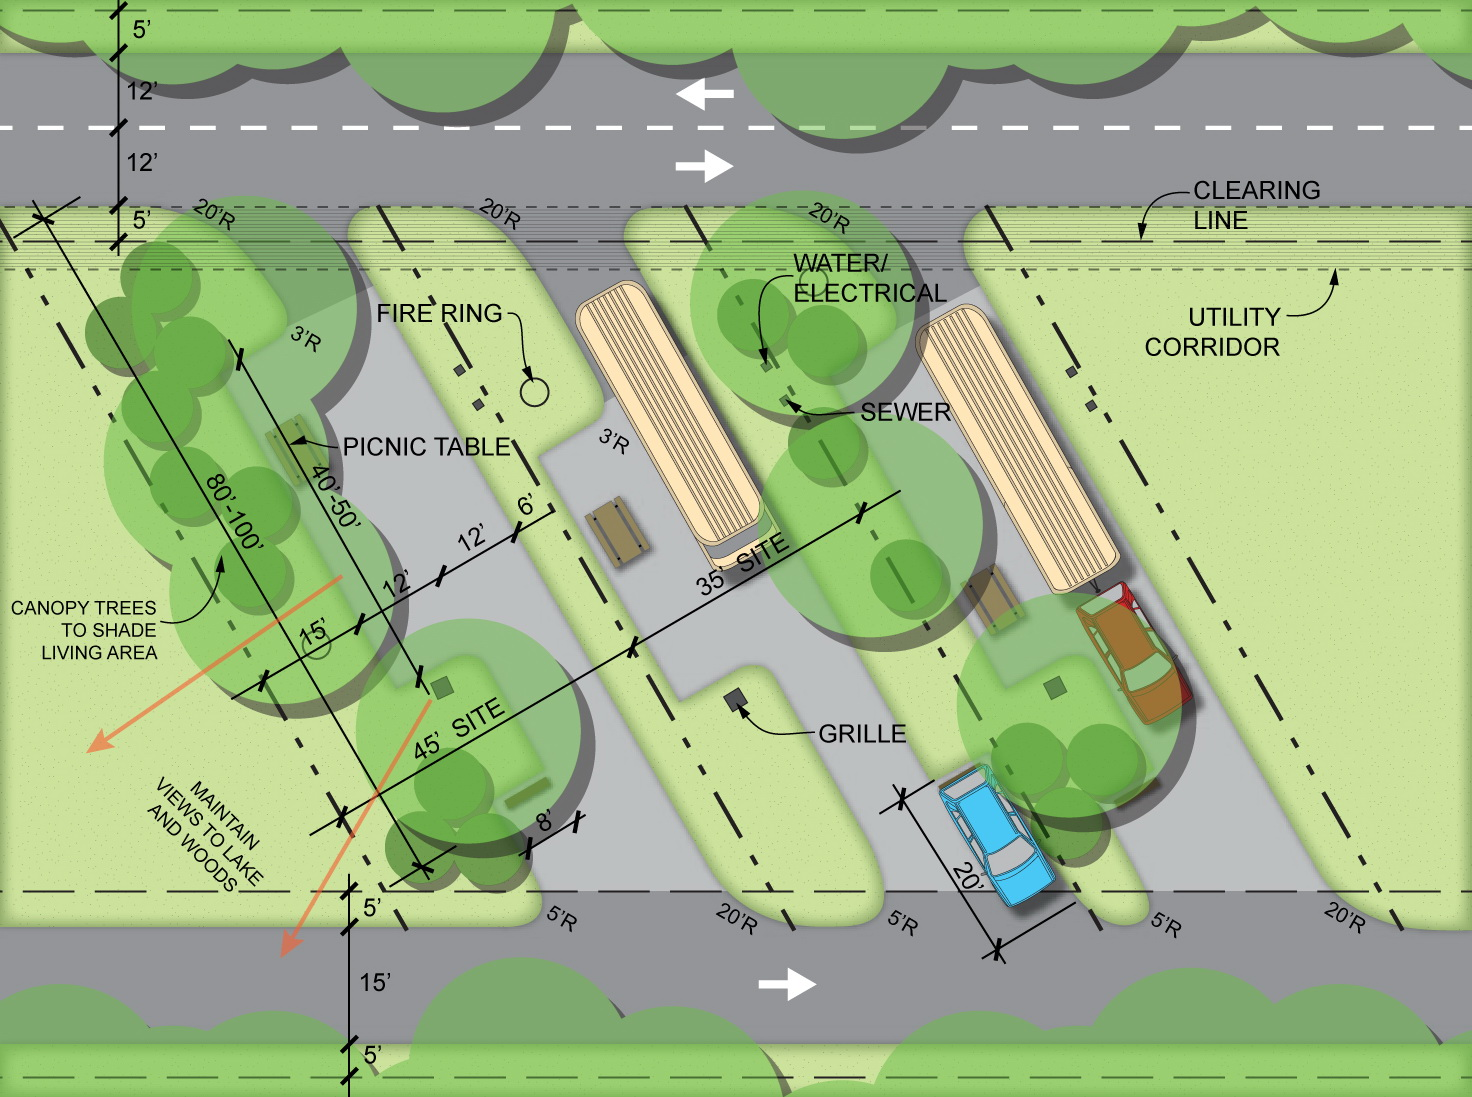 Mwcd Master Plan Updates on parking pad with storage